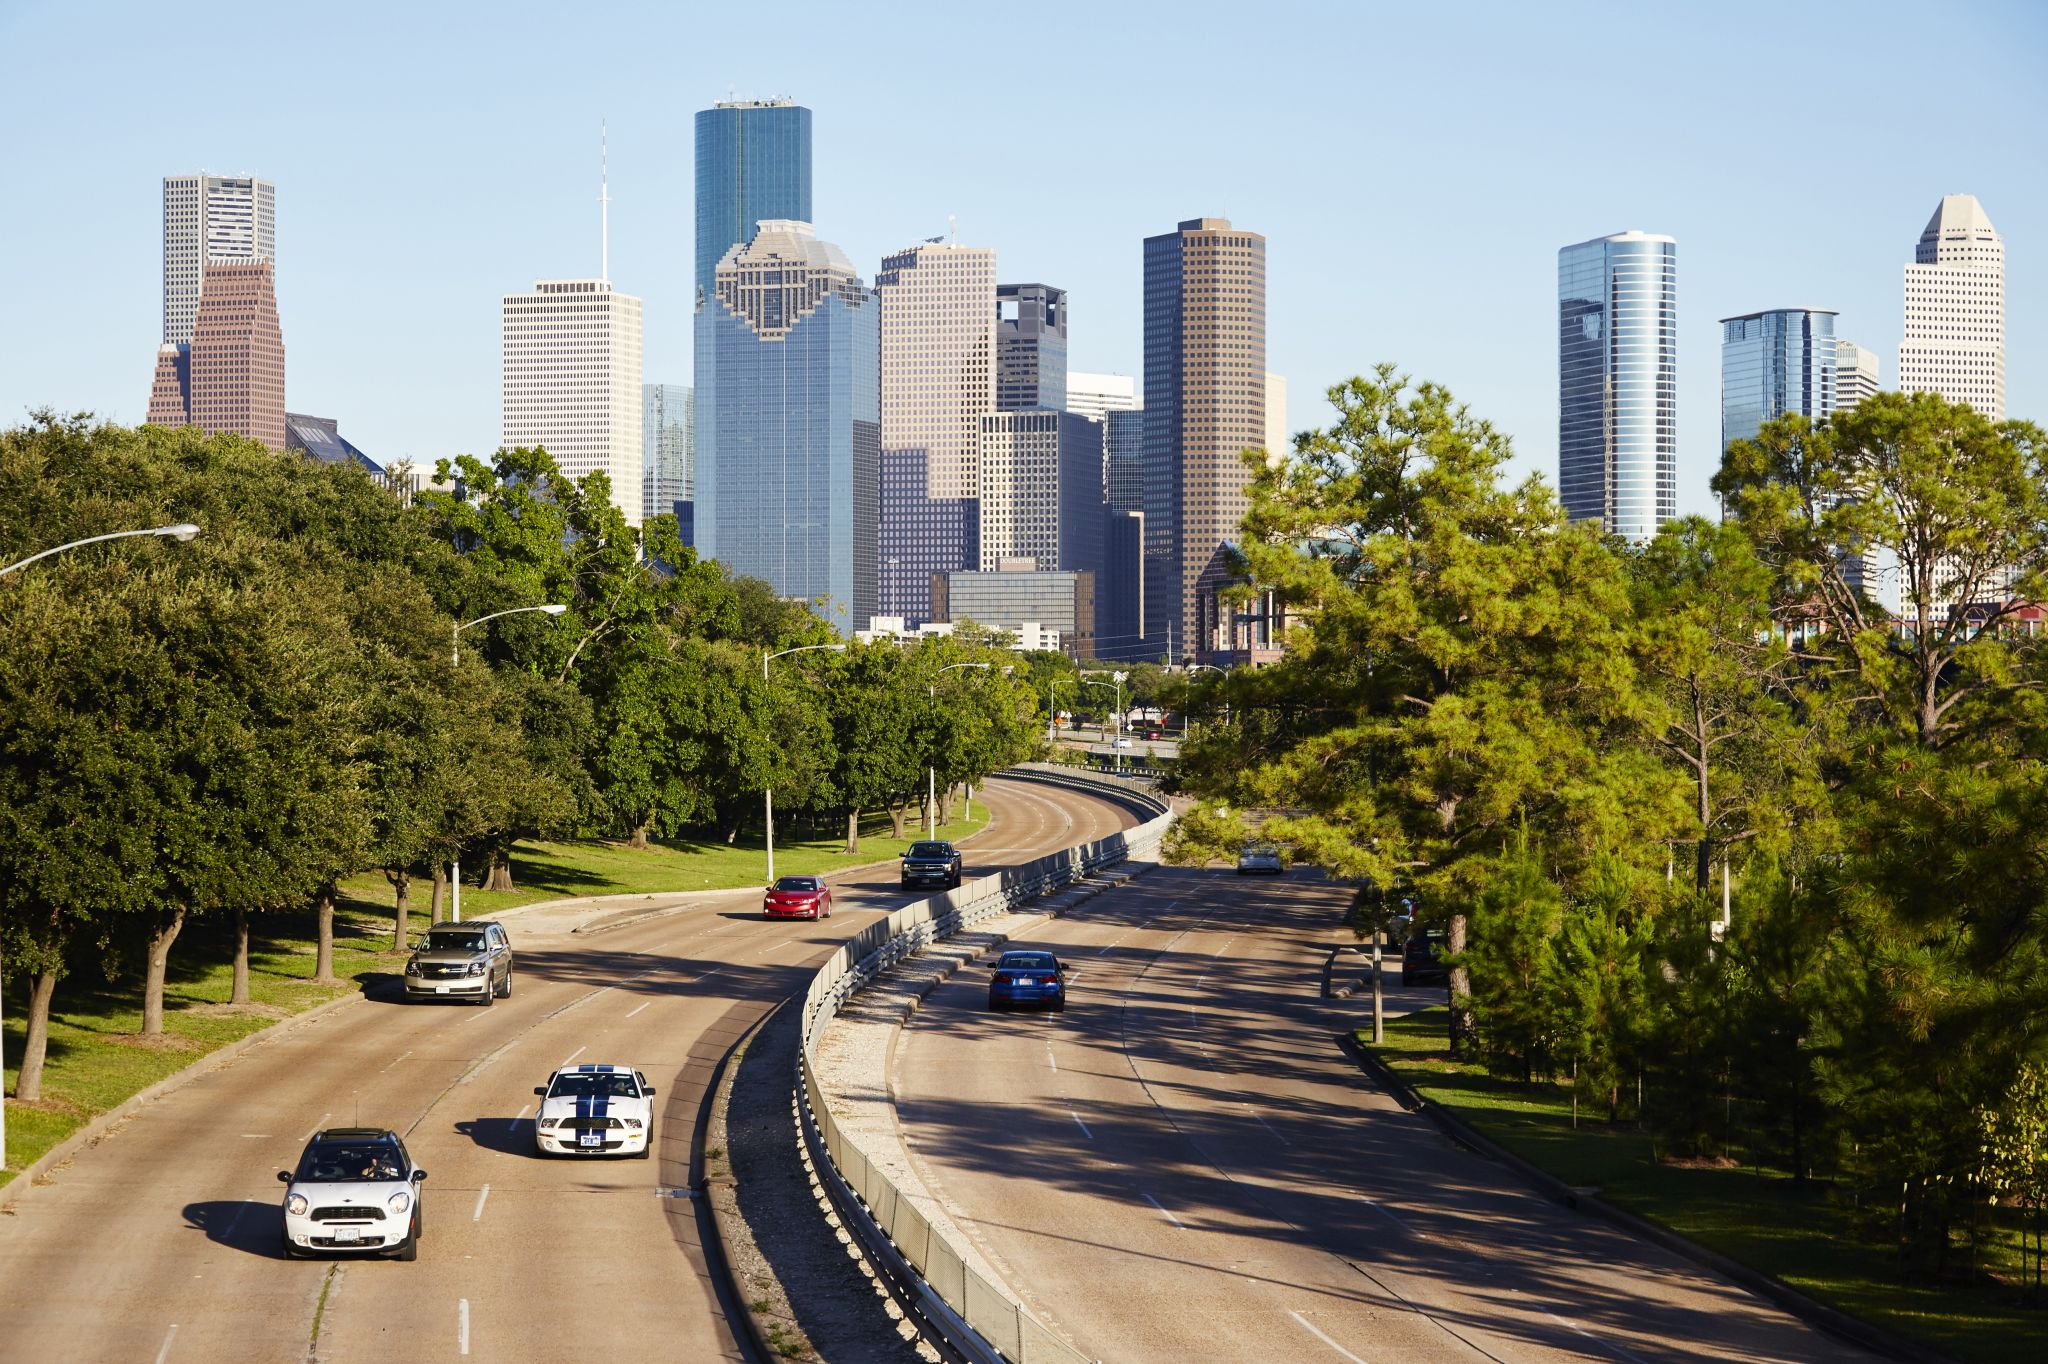 Houston's skyline stands out among big cities, according to survey